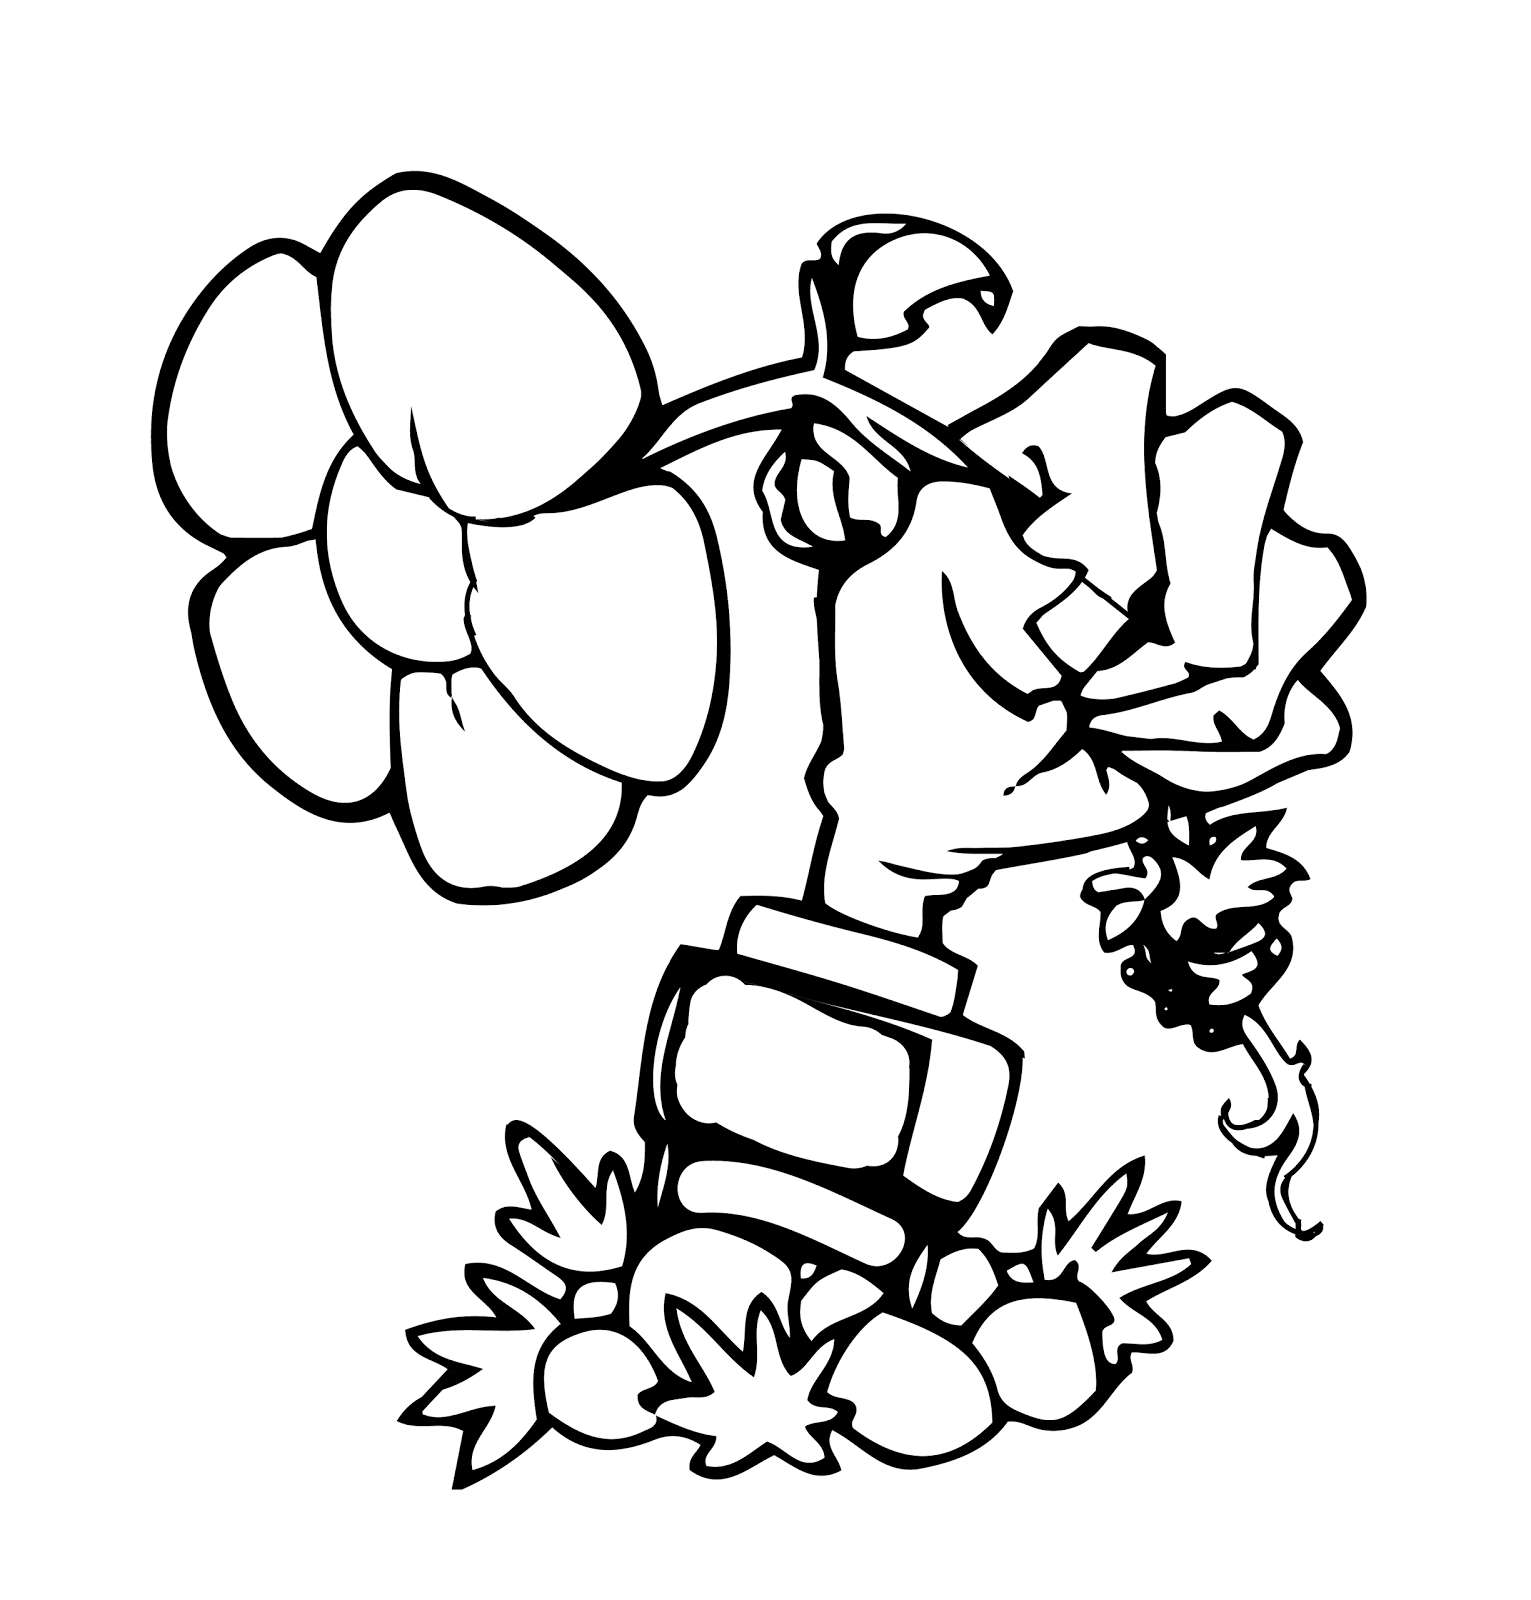 Peashooter Coloring Pages - Coloring Home